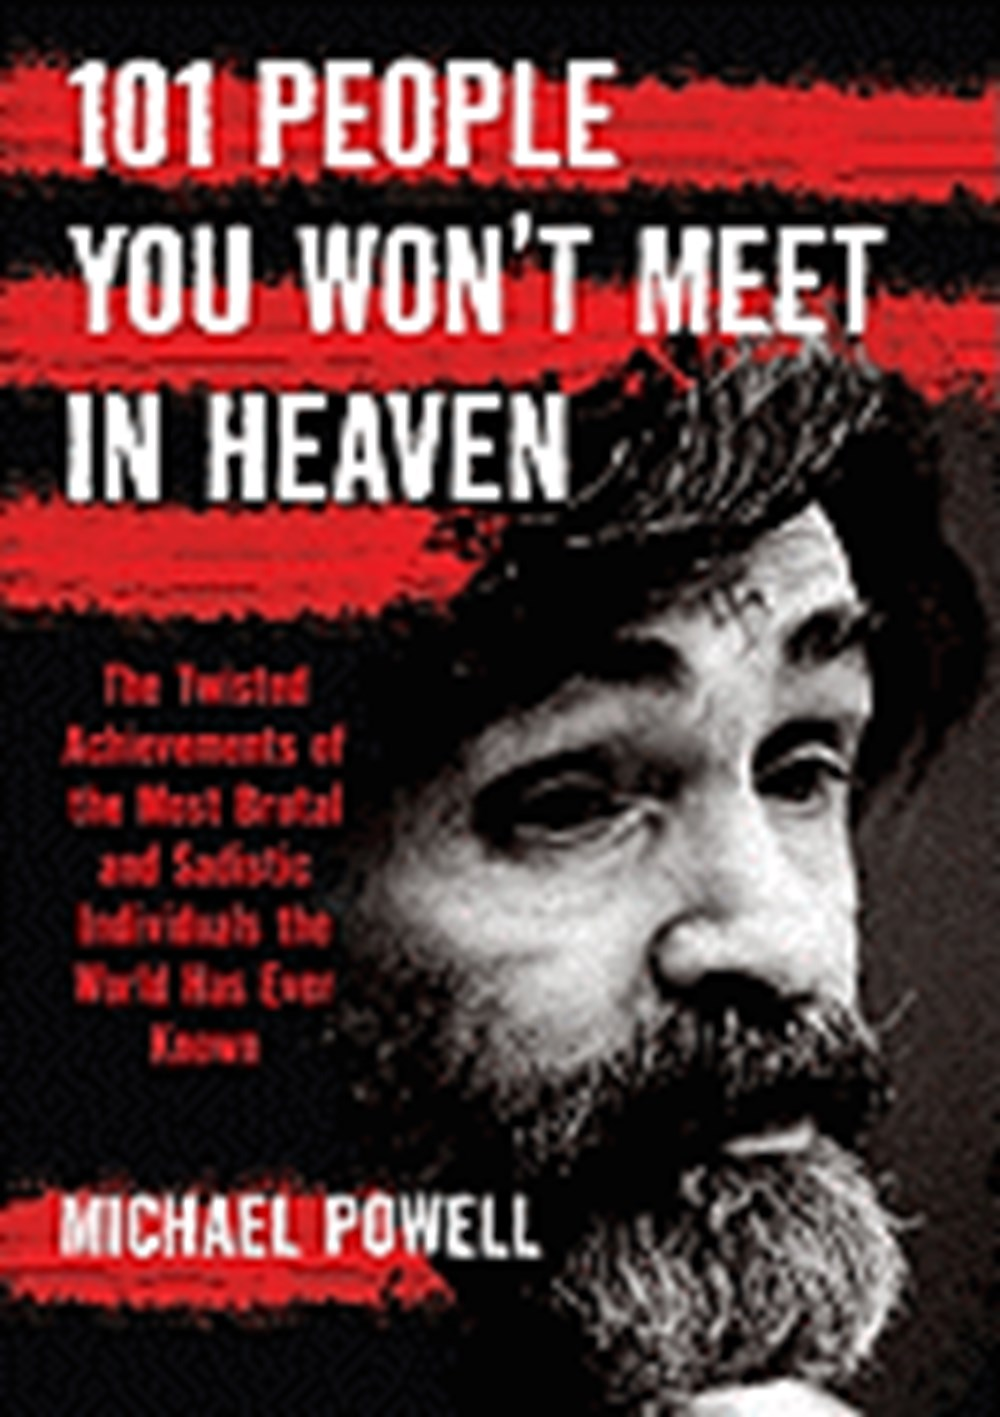 101 People You Won't Meet in Heaven The Twisted Achievements of the Most Brutal and Sadistic Individ